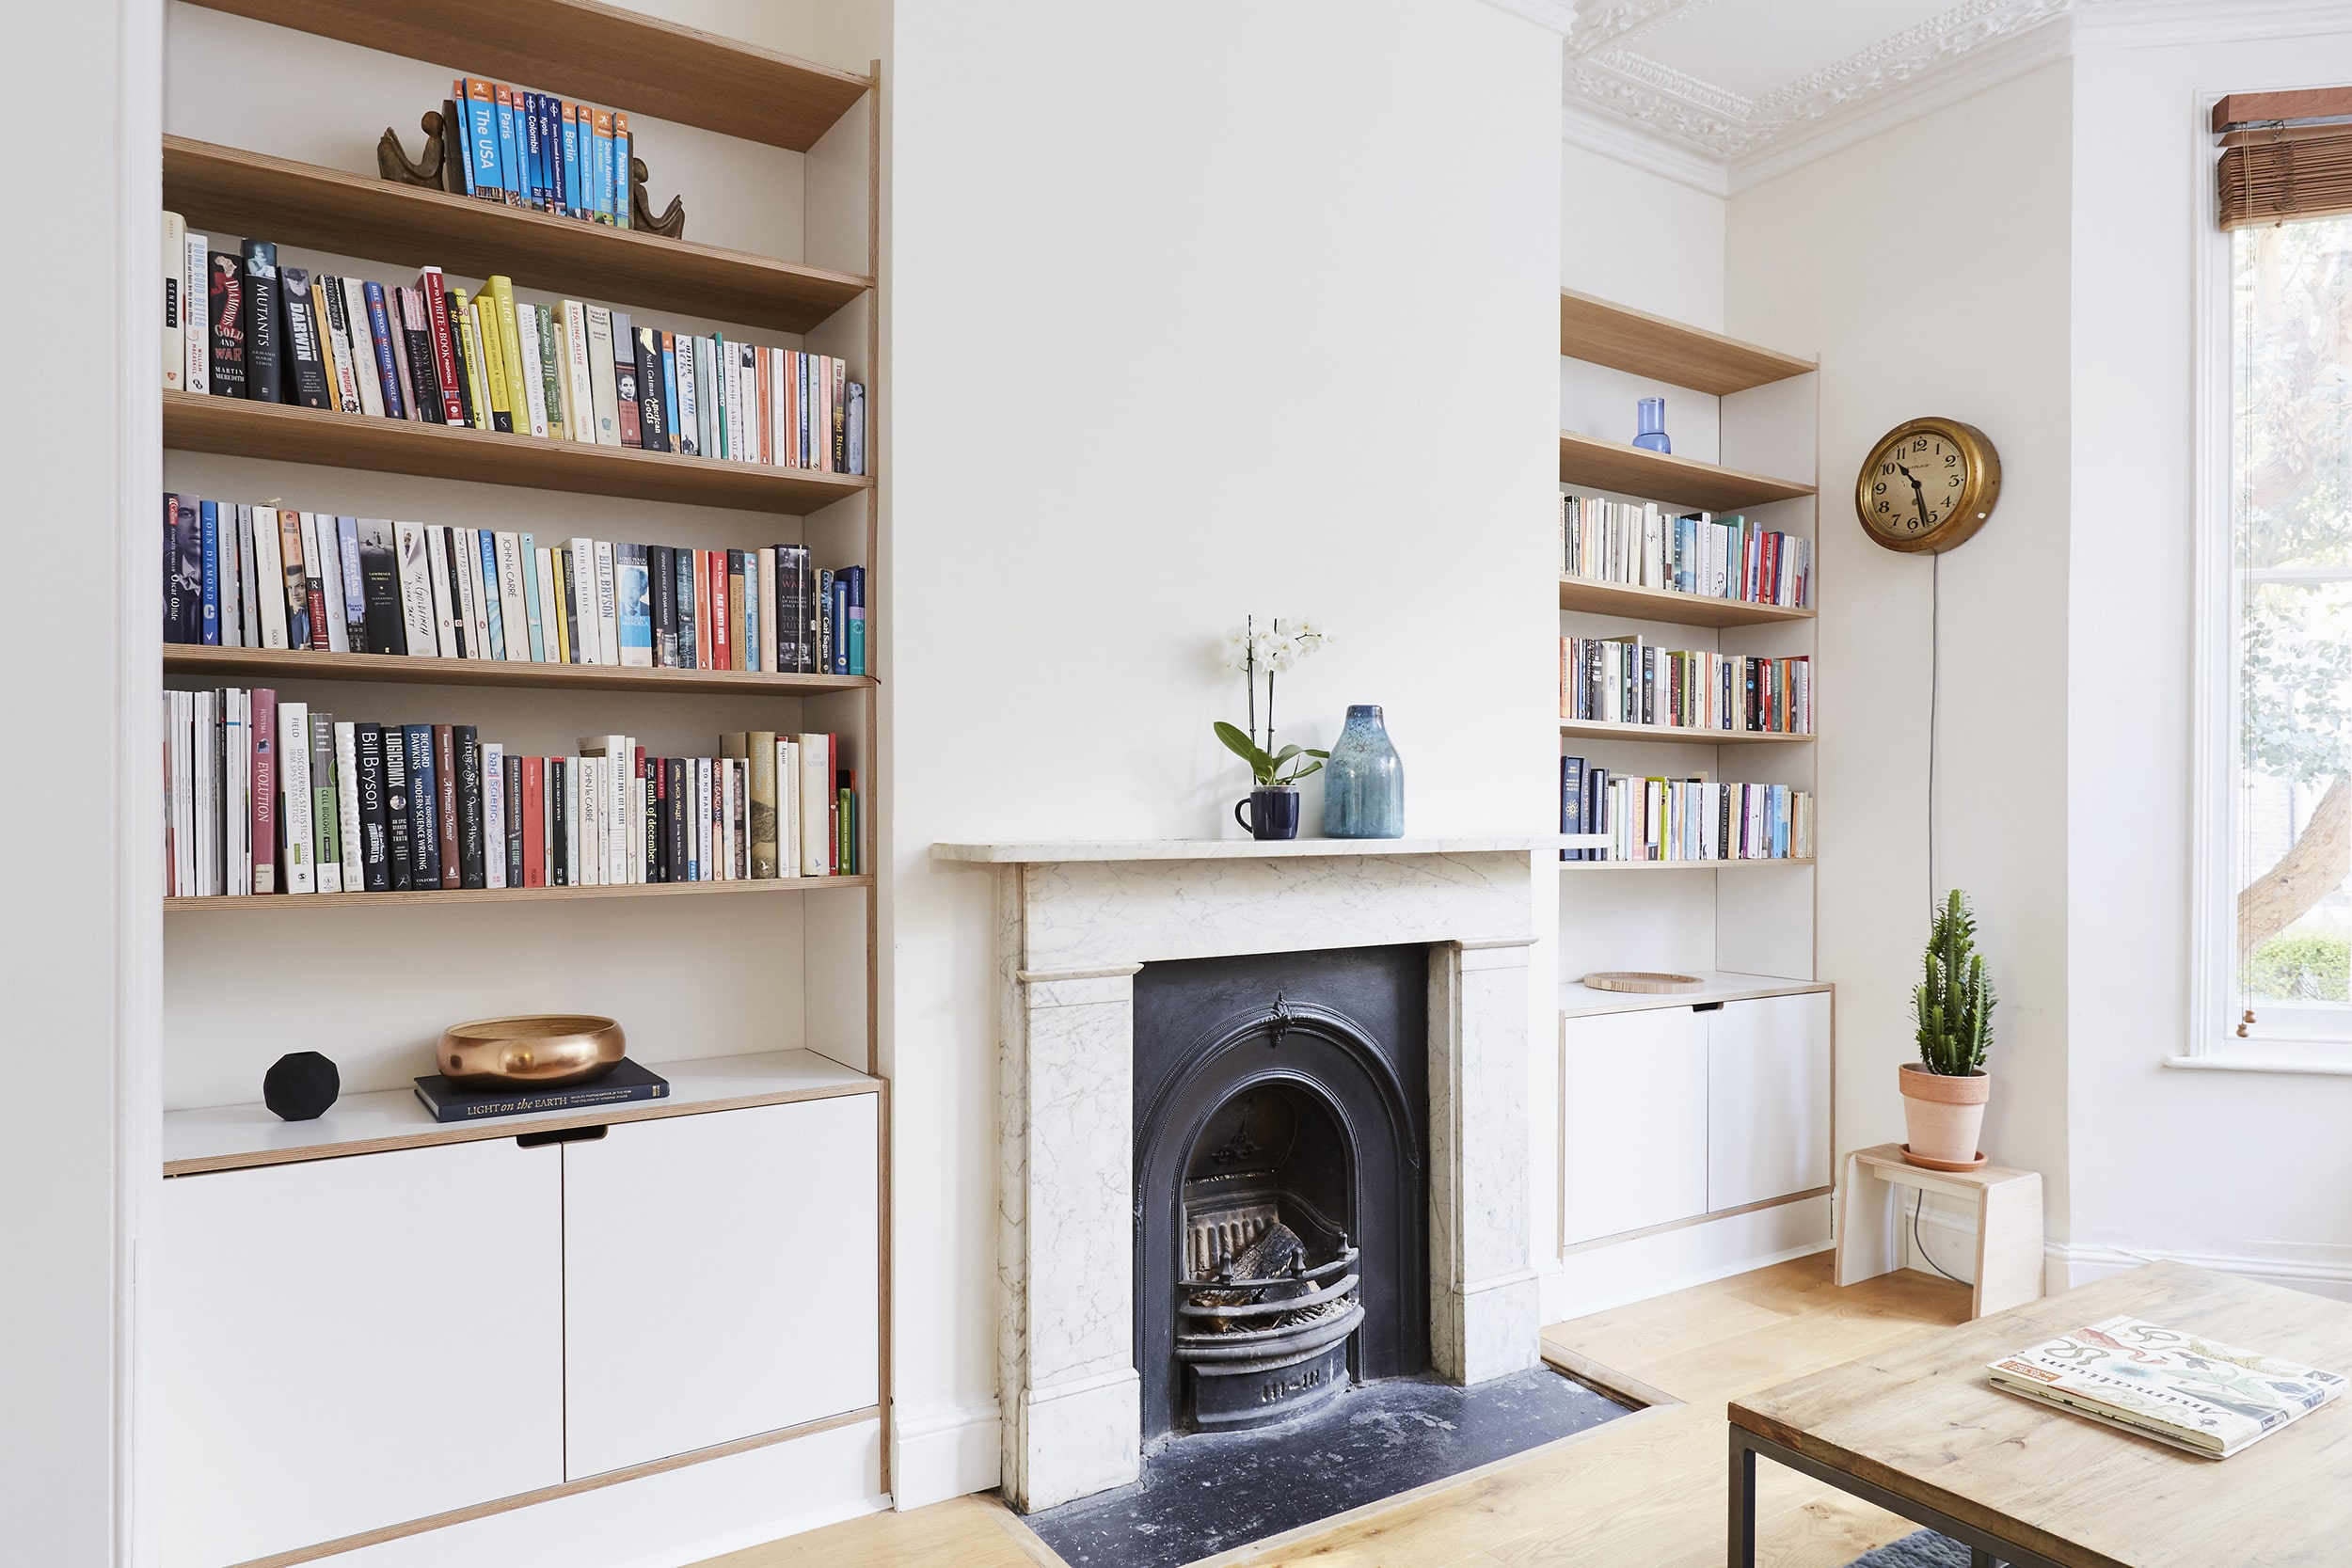 The bright and modern living room. Original features like the fireplace and cornices stand out next to the bookshelves's minimal modern feel.